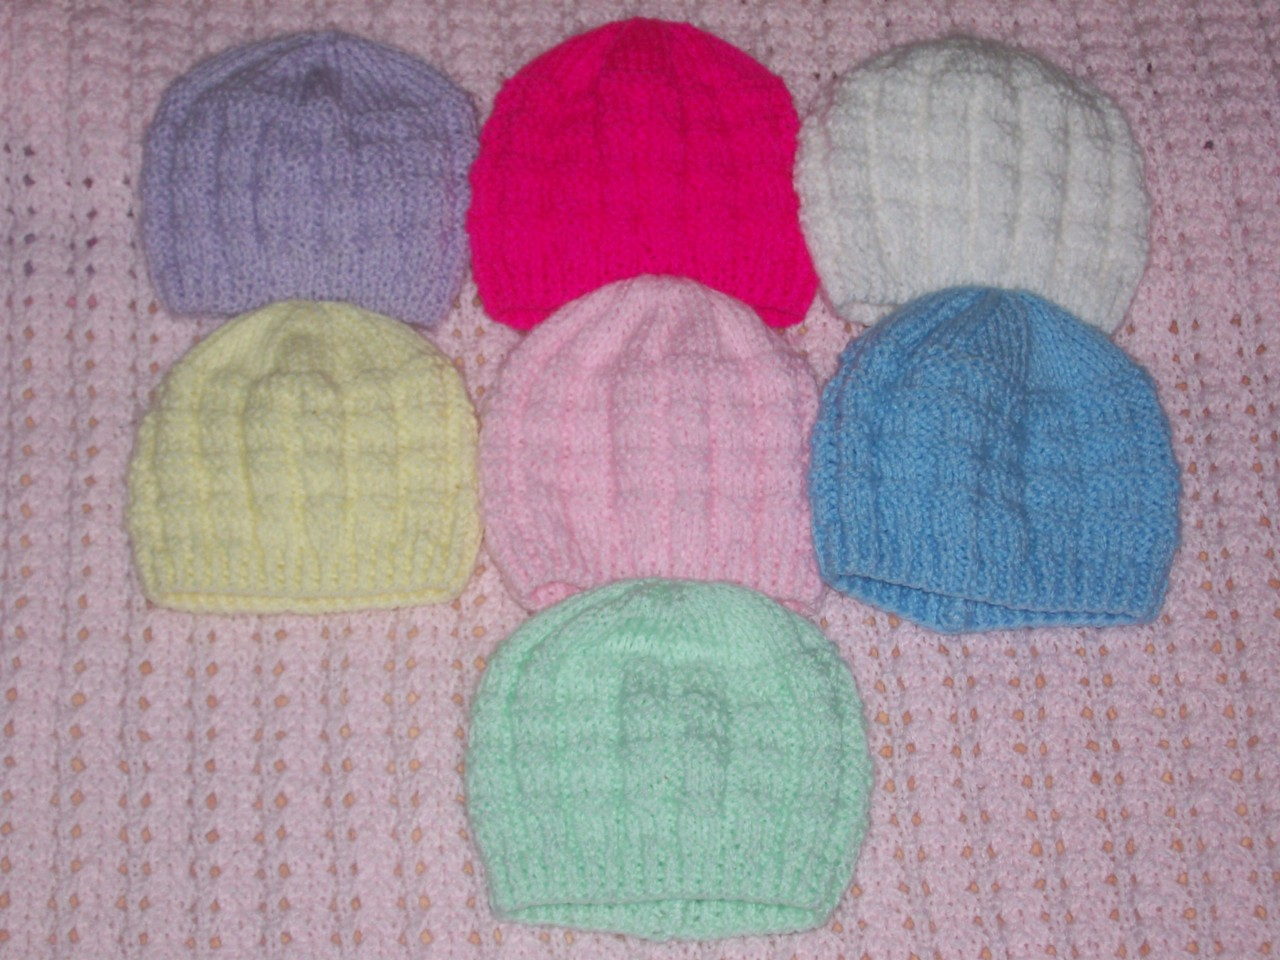 Knitted Baby Boy Hat Patterns : Newborn Girls/Boys Basketweave Pattern Hand Knitted Baby Beanie Hat eBay